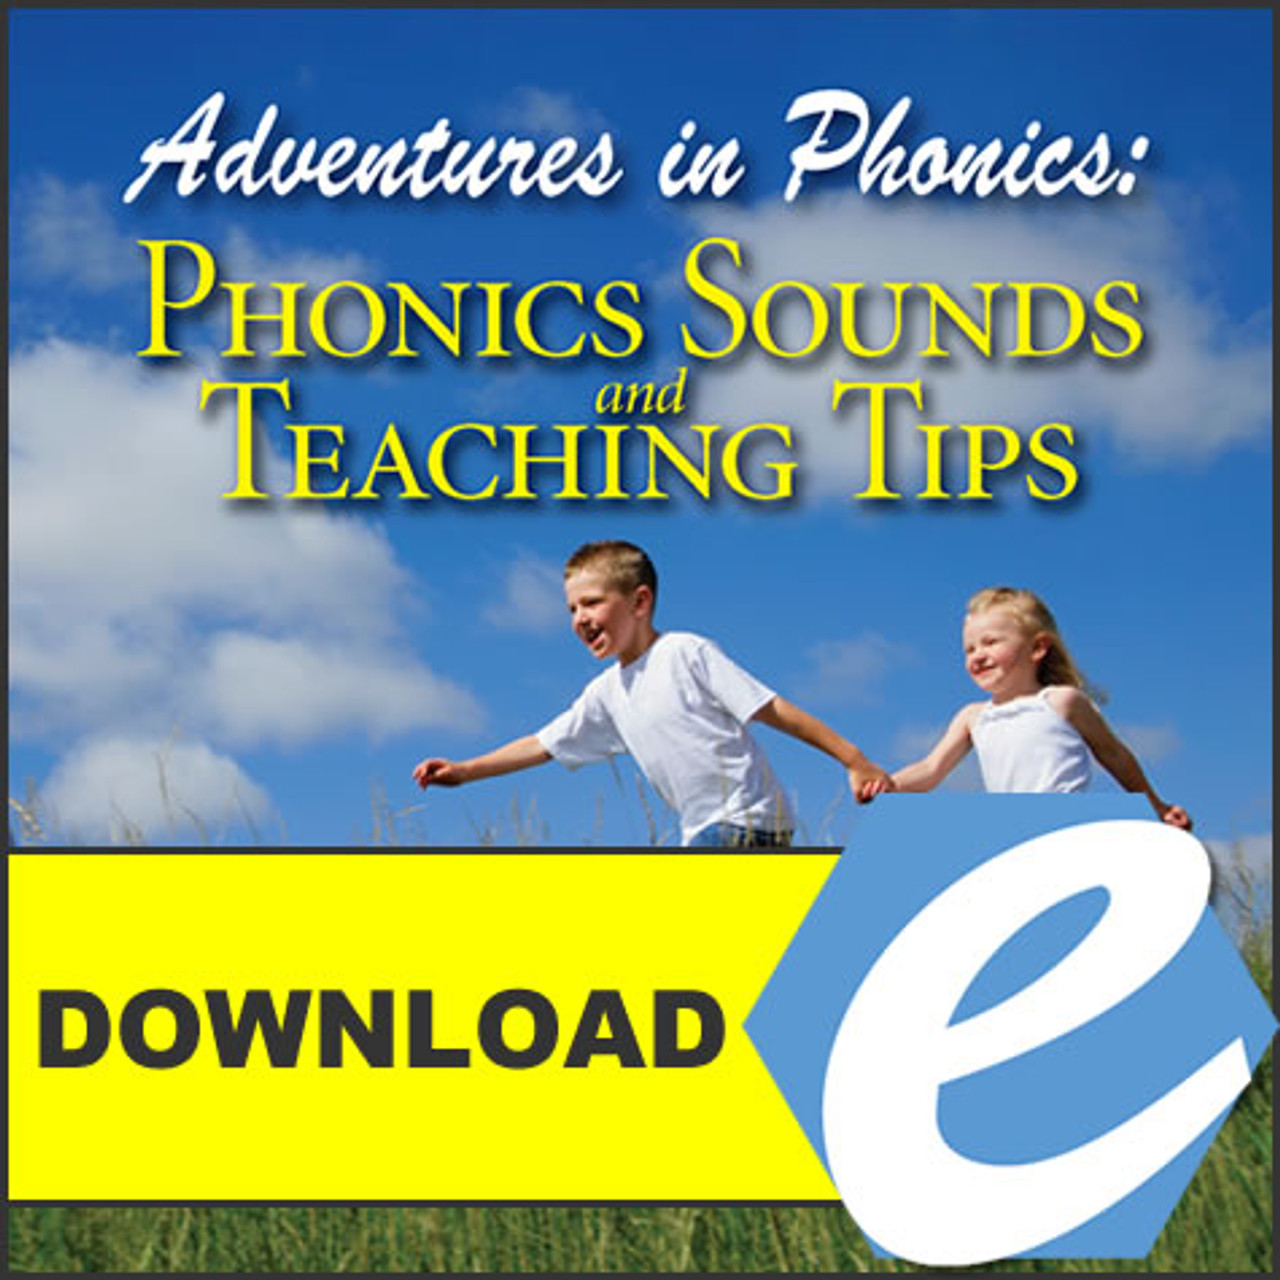 Adventures in Phonics: Phonics Sounds and Teaching Tips - MP3 Download